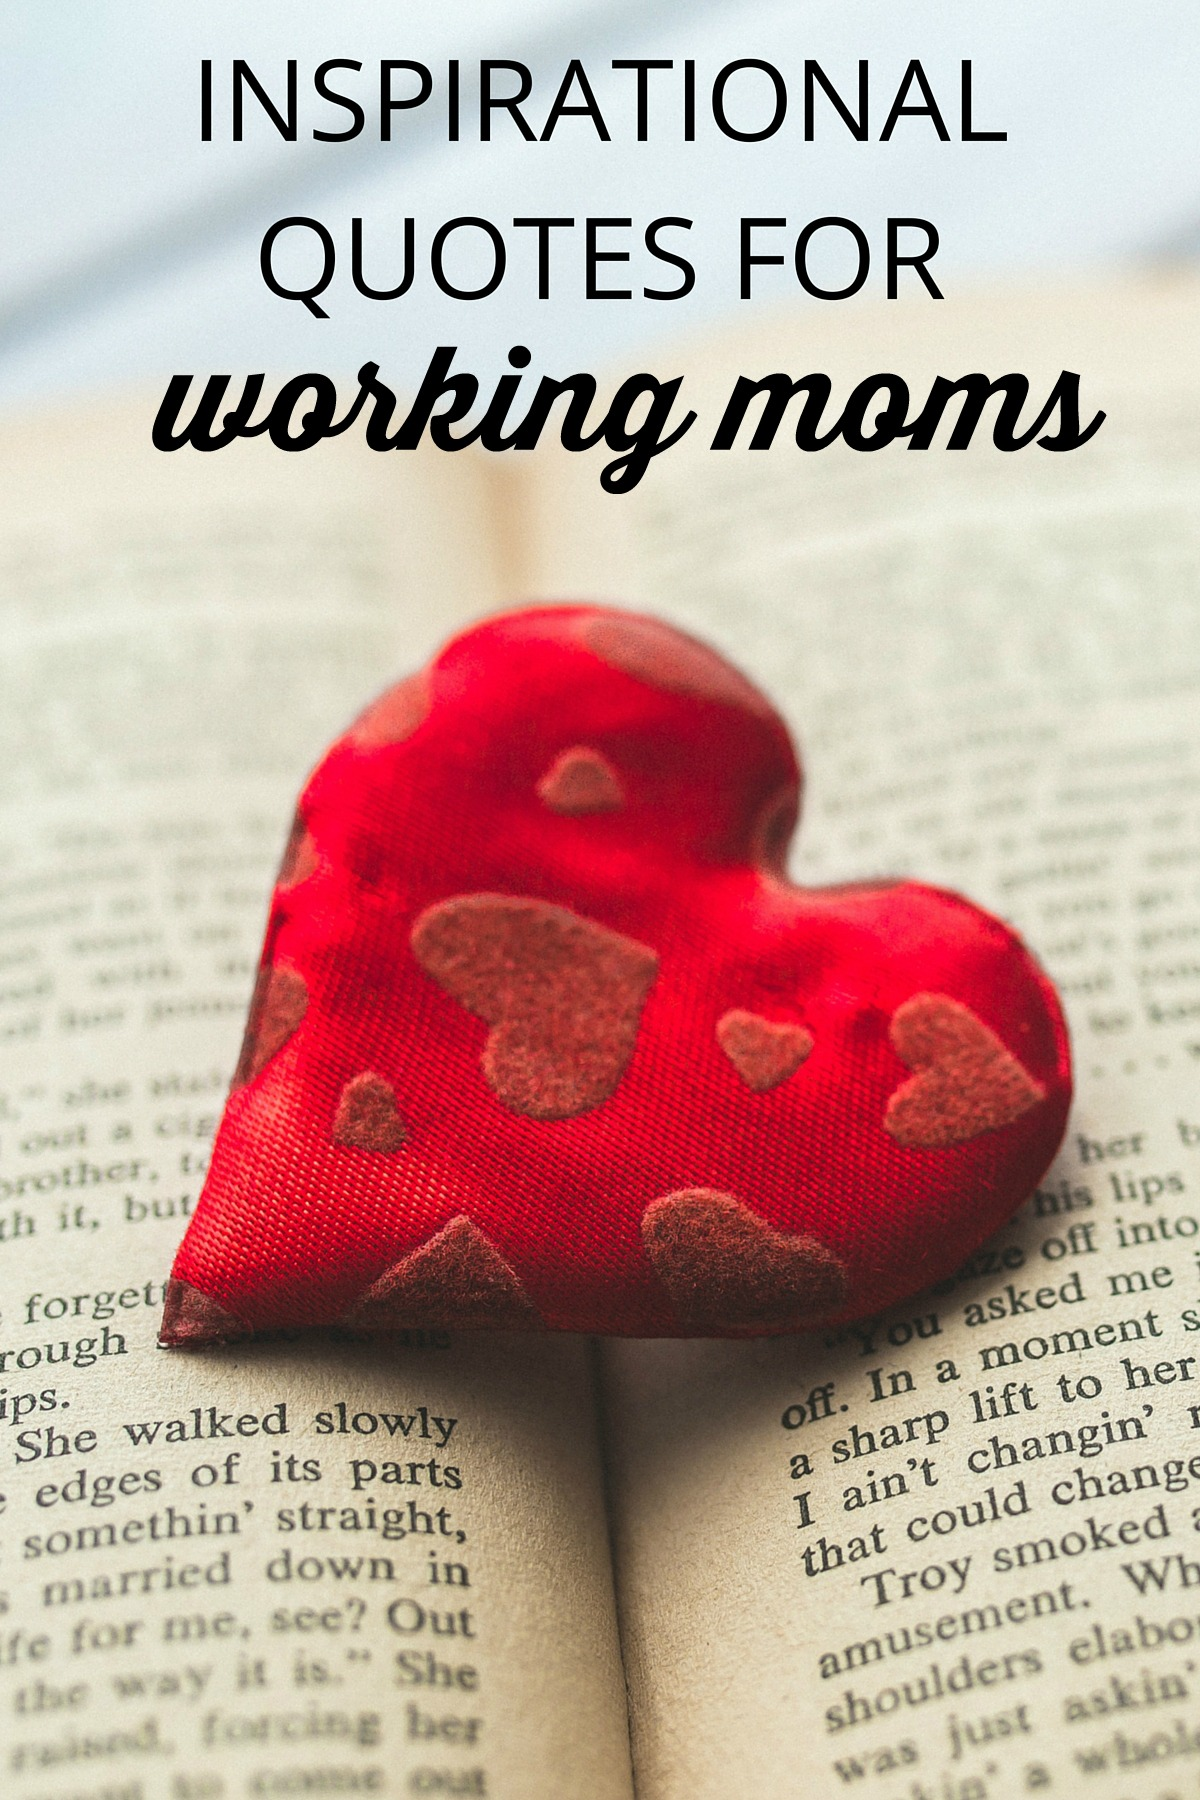 You are not the first mother to need a little reassurance, a little boost or a reminder that she can do what seems impossible. Here are some positive words and inspirational quotes for working moms that I have found speak to the heart of the matters that affect how moms feel and the quality of their work.